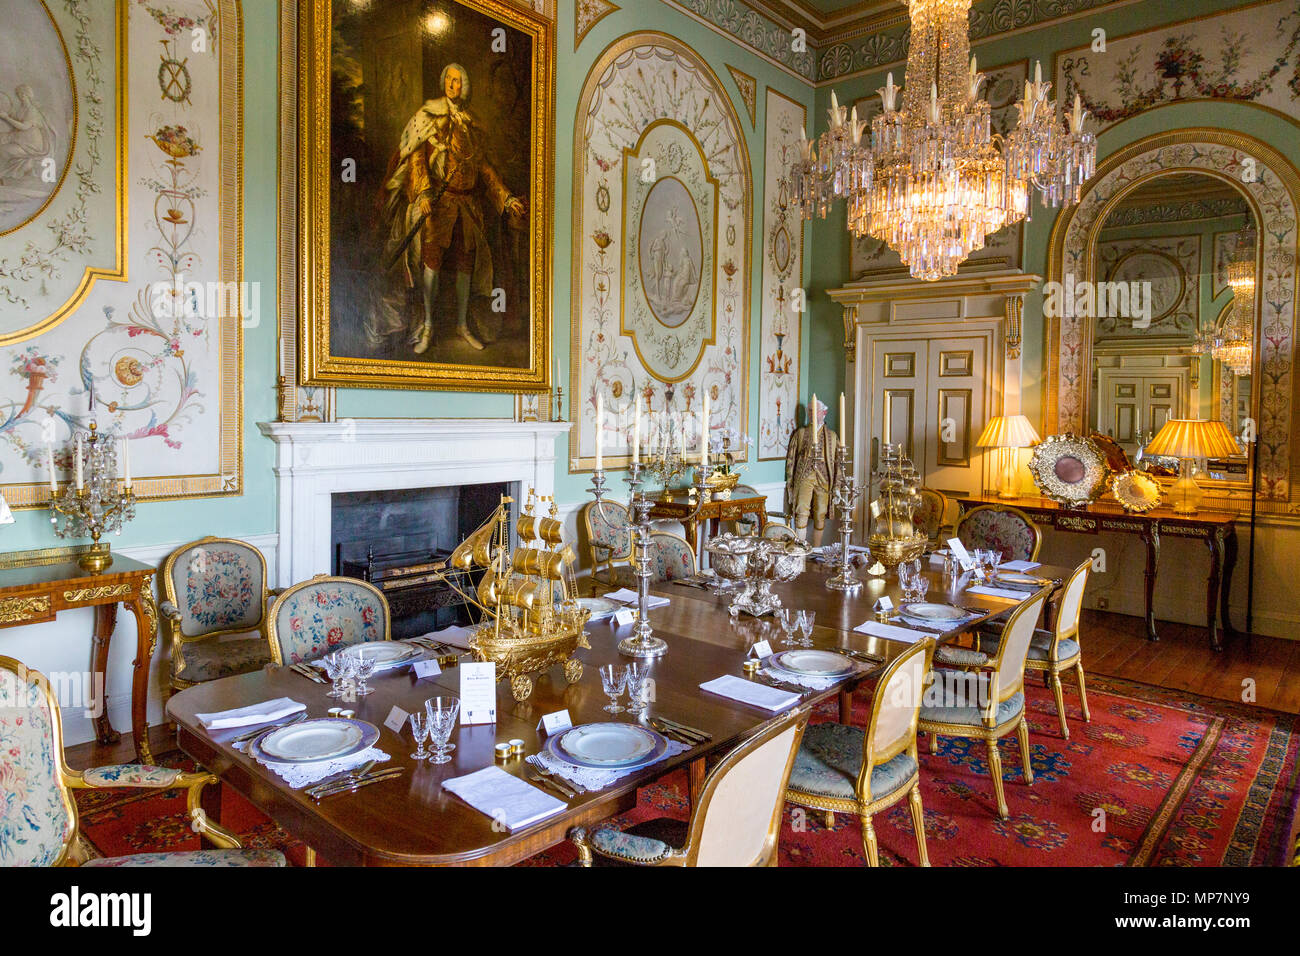 Delicieux The Opulent Wall Decorations And Chandelier In The Dining ...